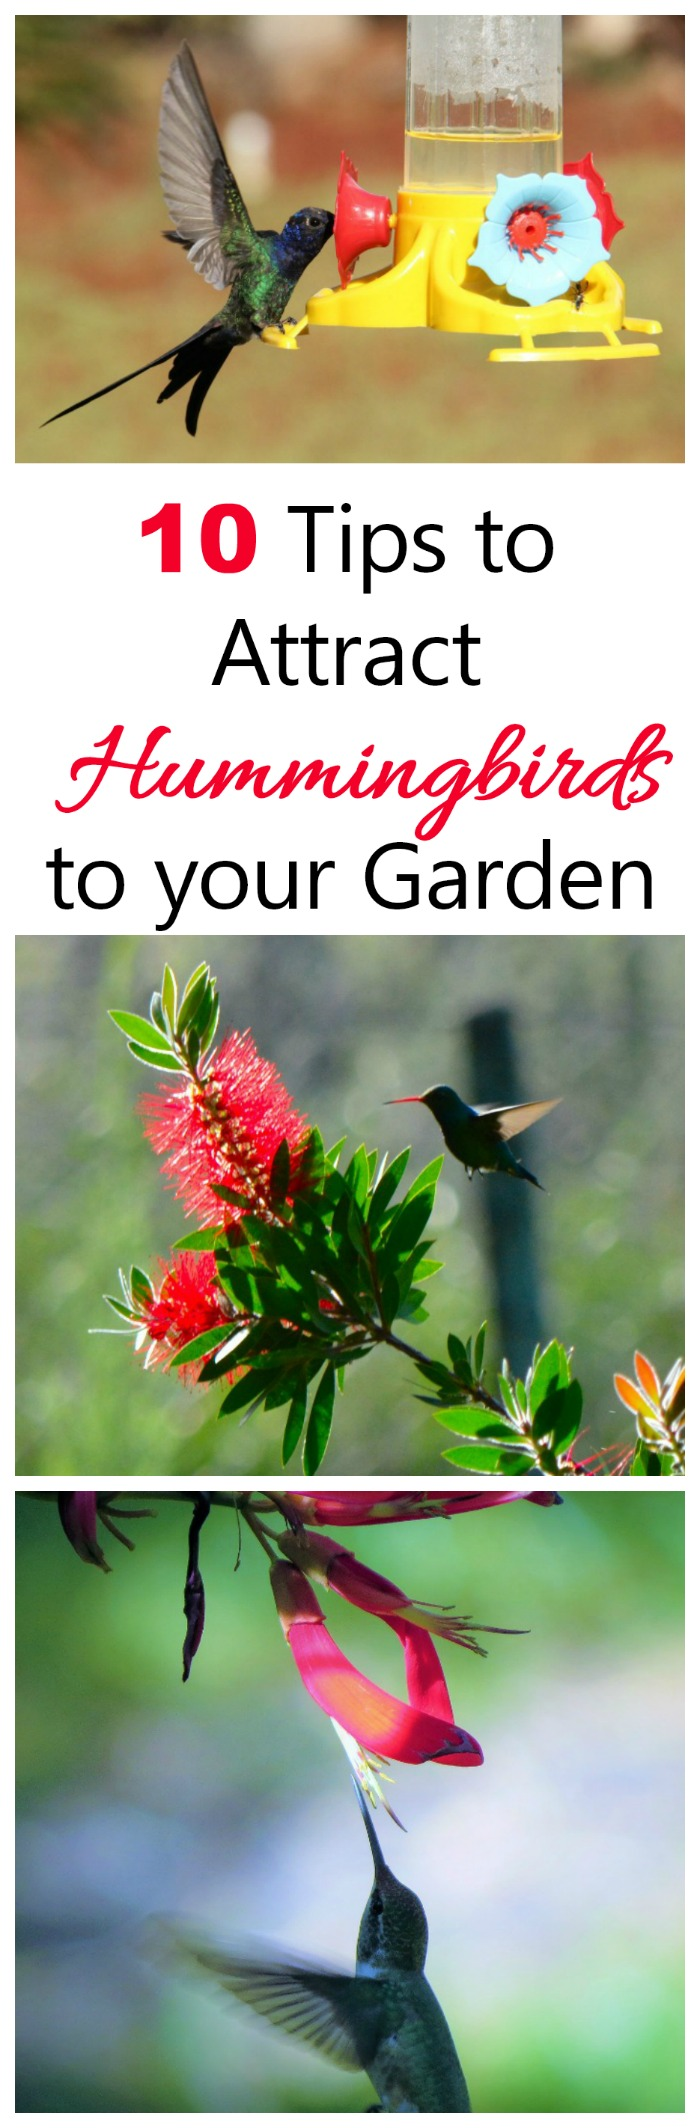 Good Put These 10 Tips To Use To Attract Hummingbirds To Your Yard And Keep Them  Coming